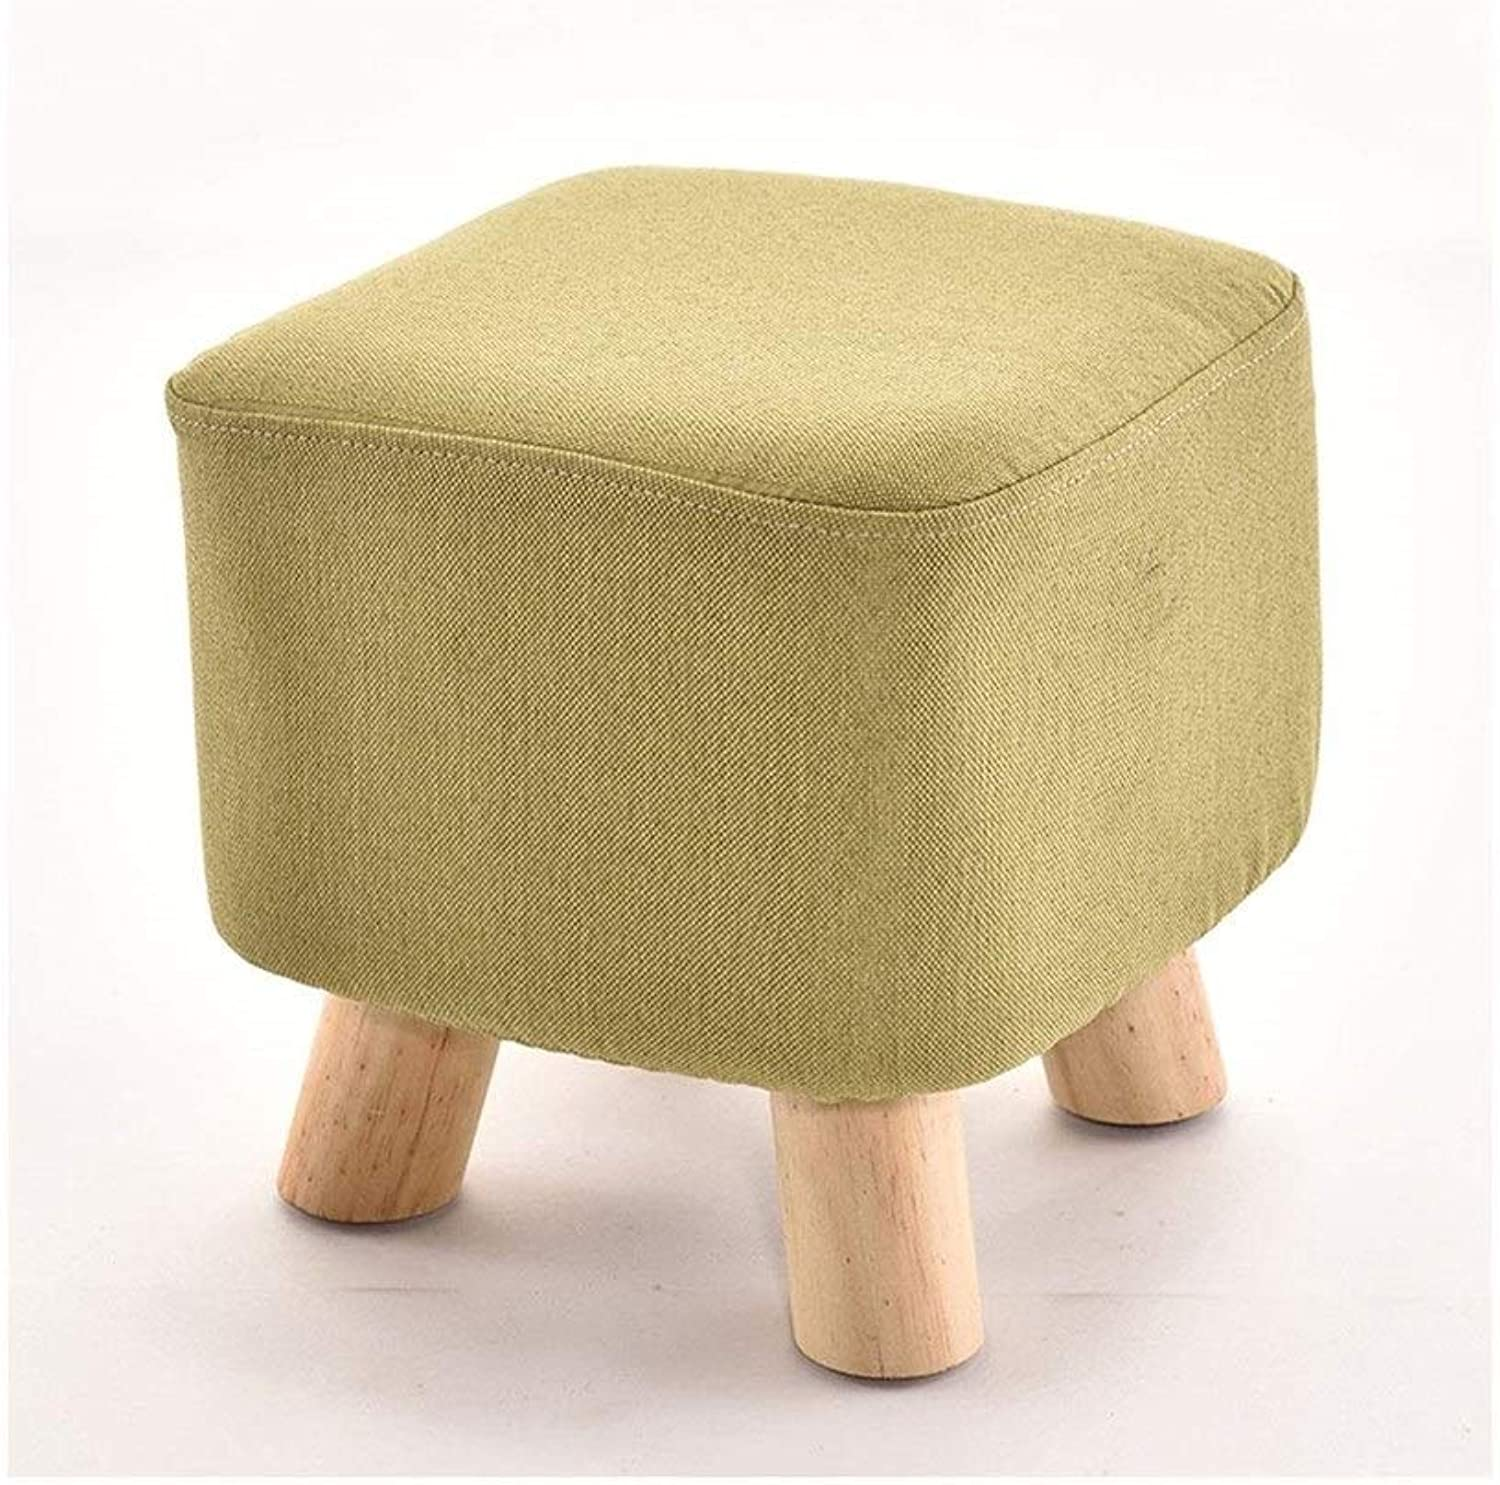 Fashion Creative Solid Wood Adult shoes Bench Sofa Stool Home FENPING (color   Yellow)